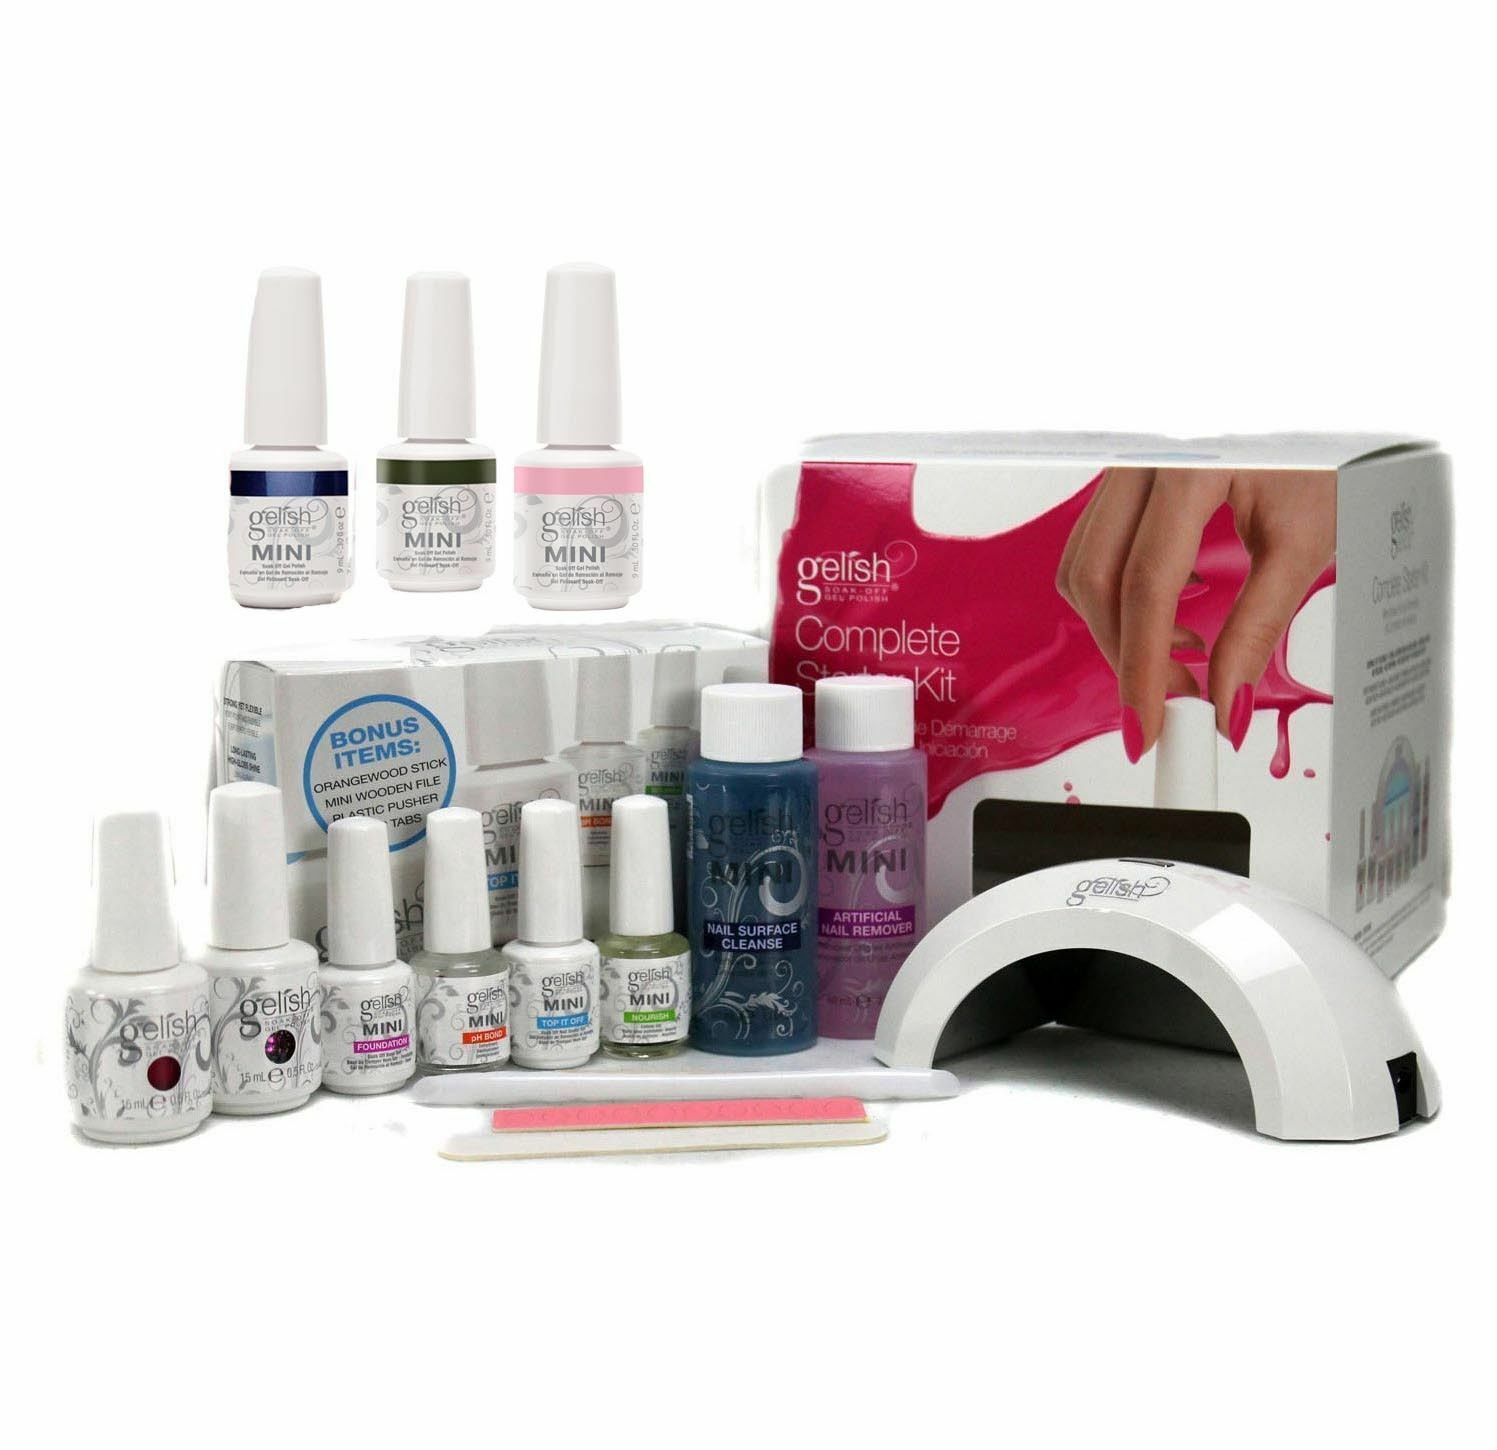 Gelish Harmony Complete Starter Led Gel Nail Polish Kit with